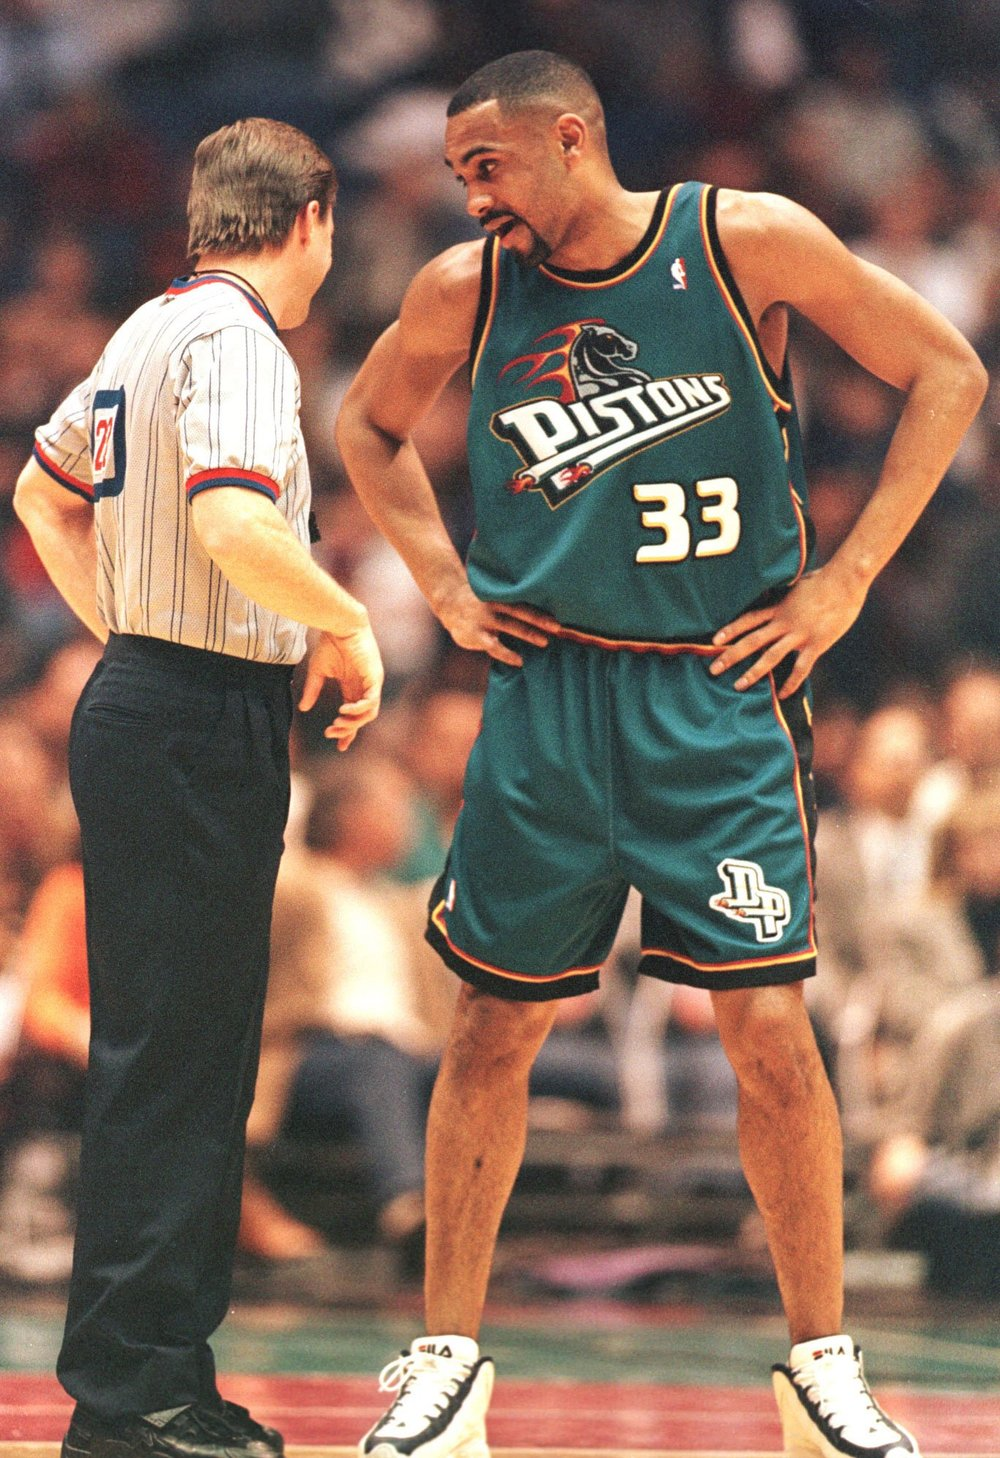 The Ref should never be dressed better than the pros on the court.....Cool FILA's though.